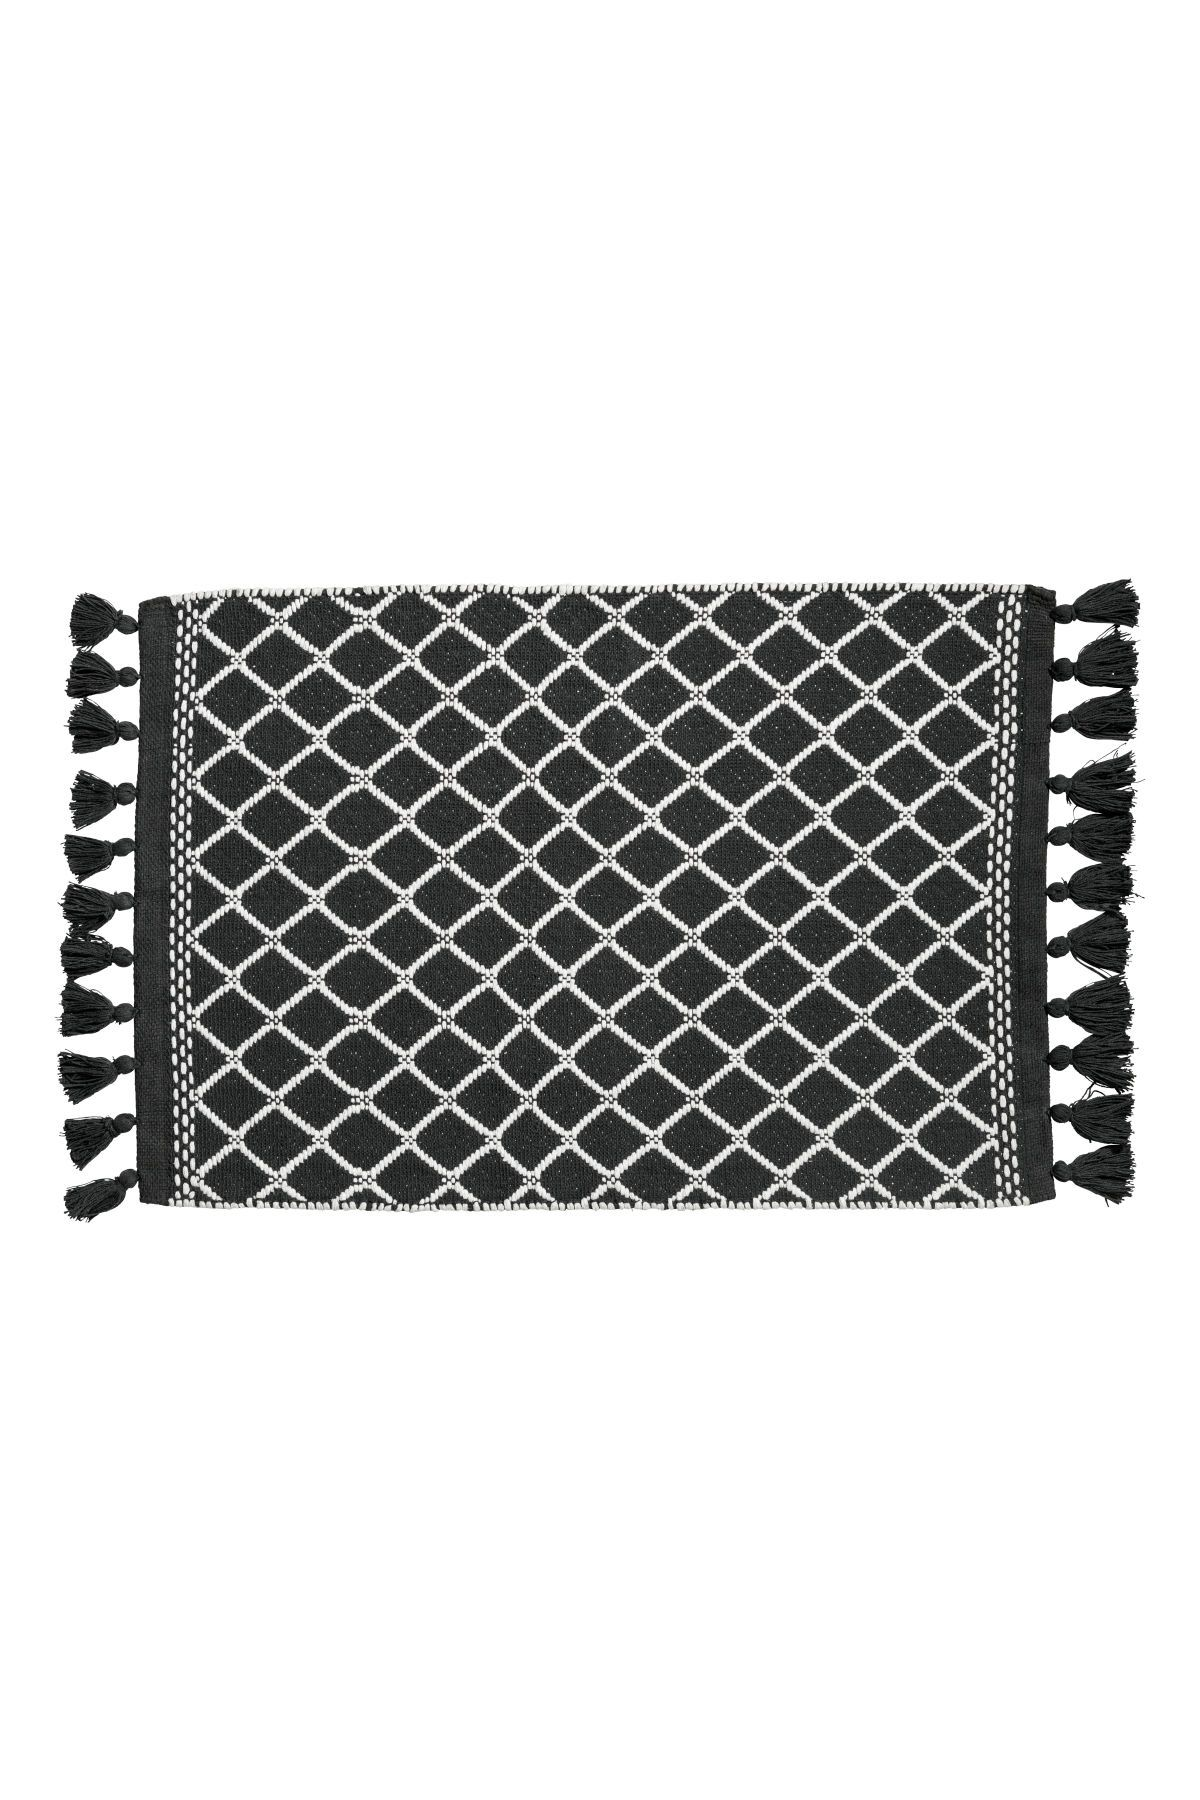 Badematte H&m Charcoal Gray White Bath Mat In Jacquard Weave Cotton Fabric